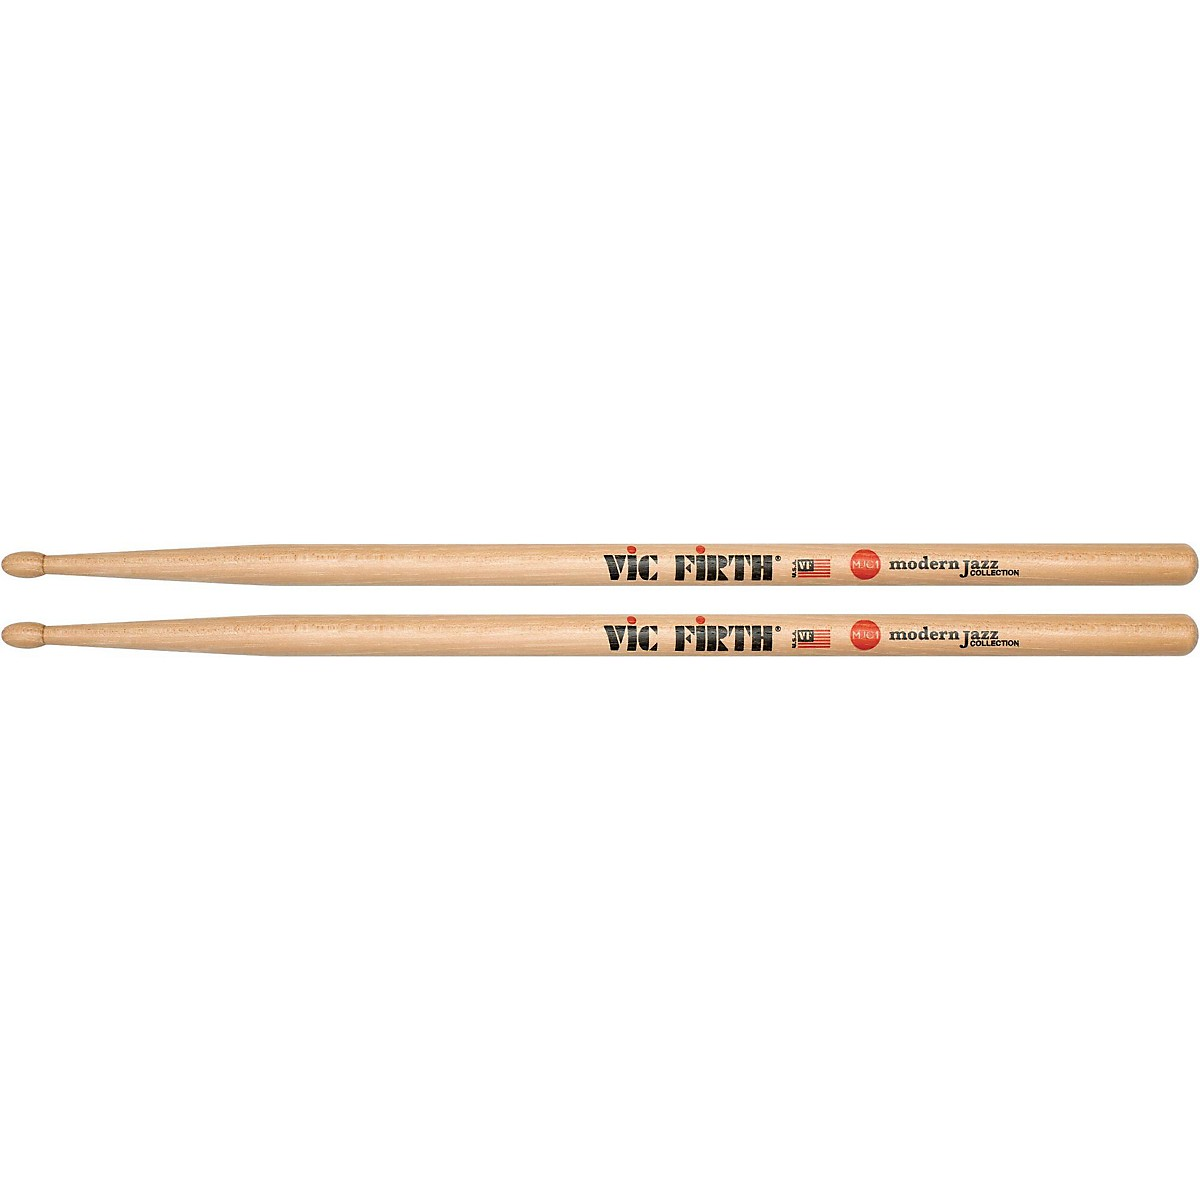 Vic Firth Modern Jazz Collection - MJC1